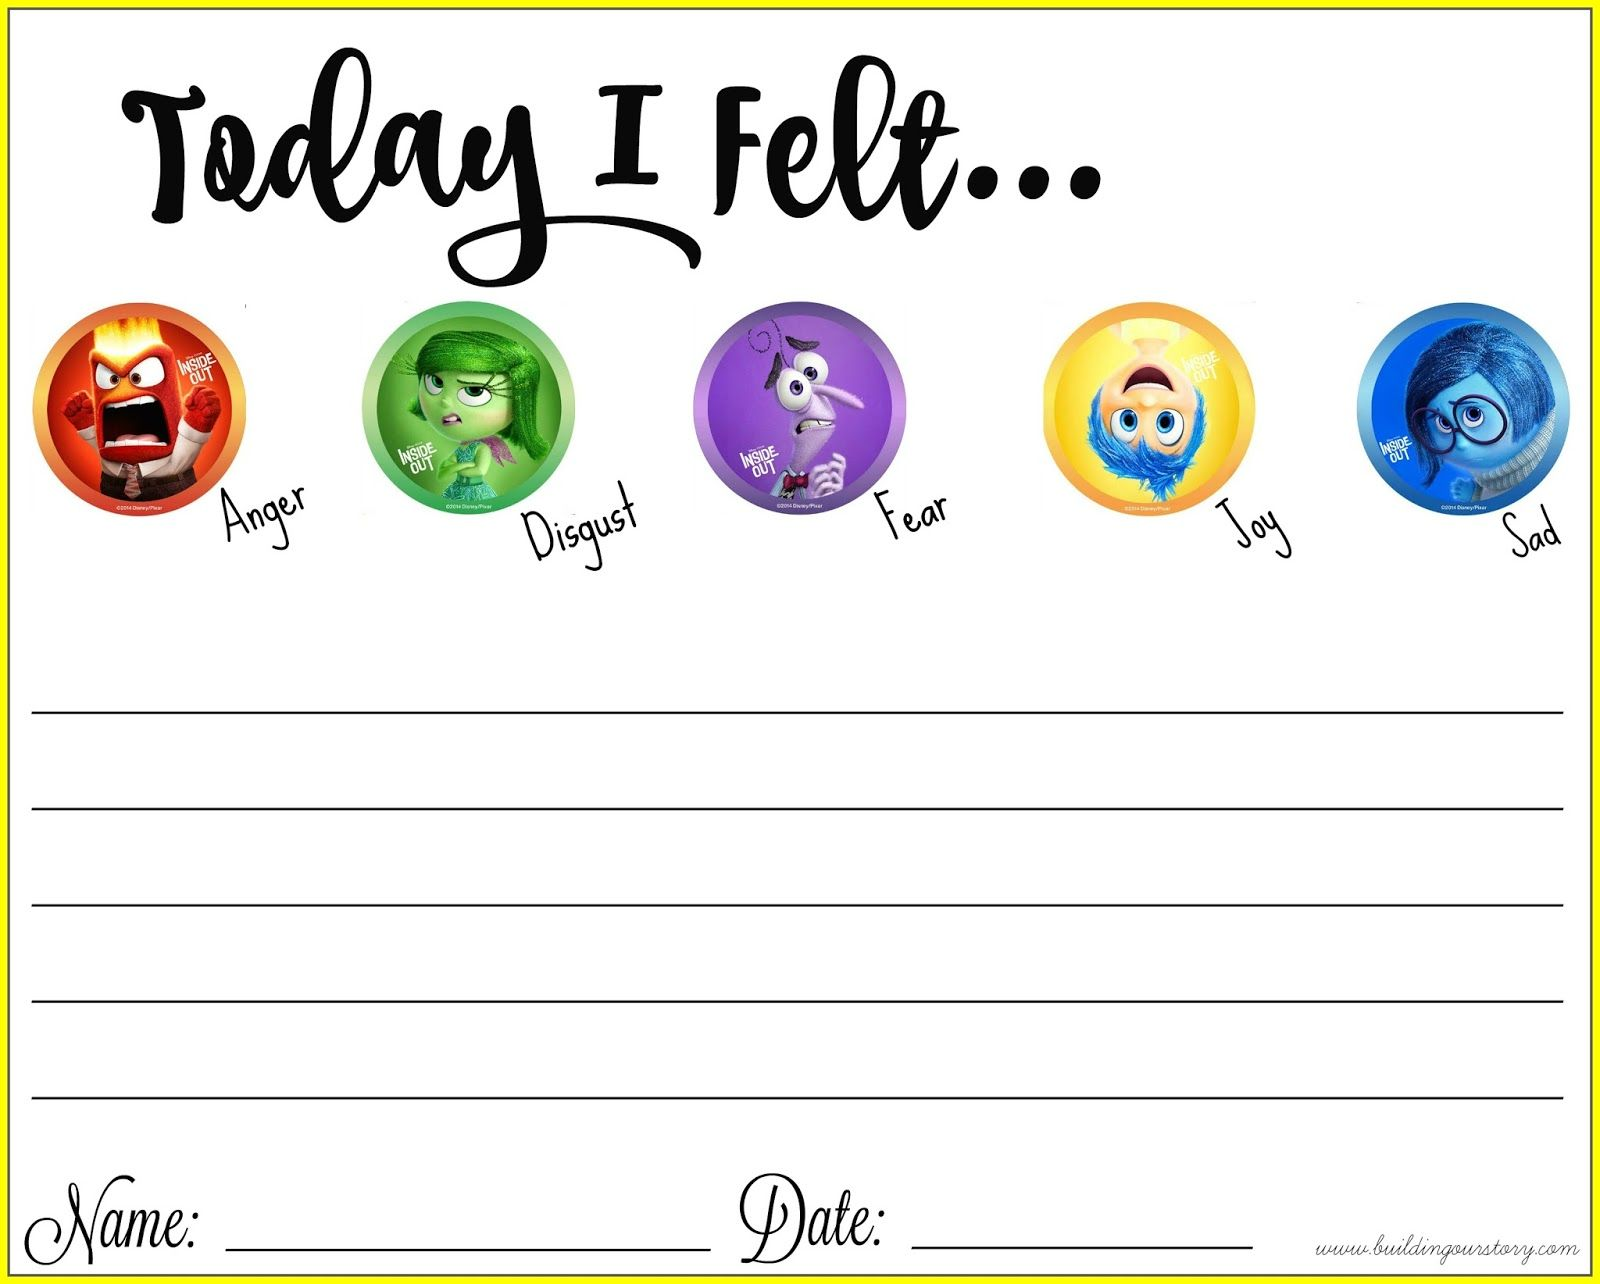 worksheet Emotions Worksheet thinking about our emotions with inside out free printable explore toys worksheets for kids and more